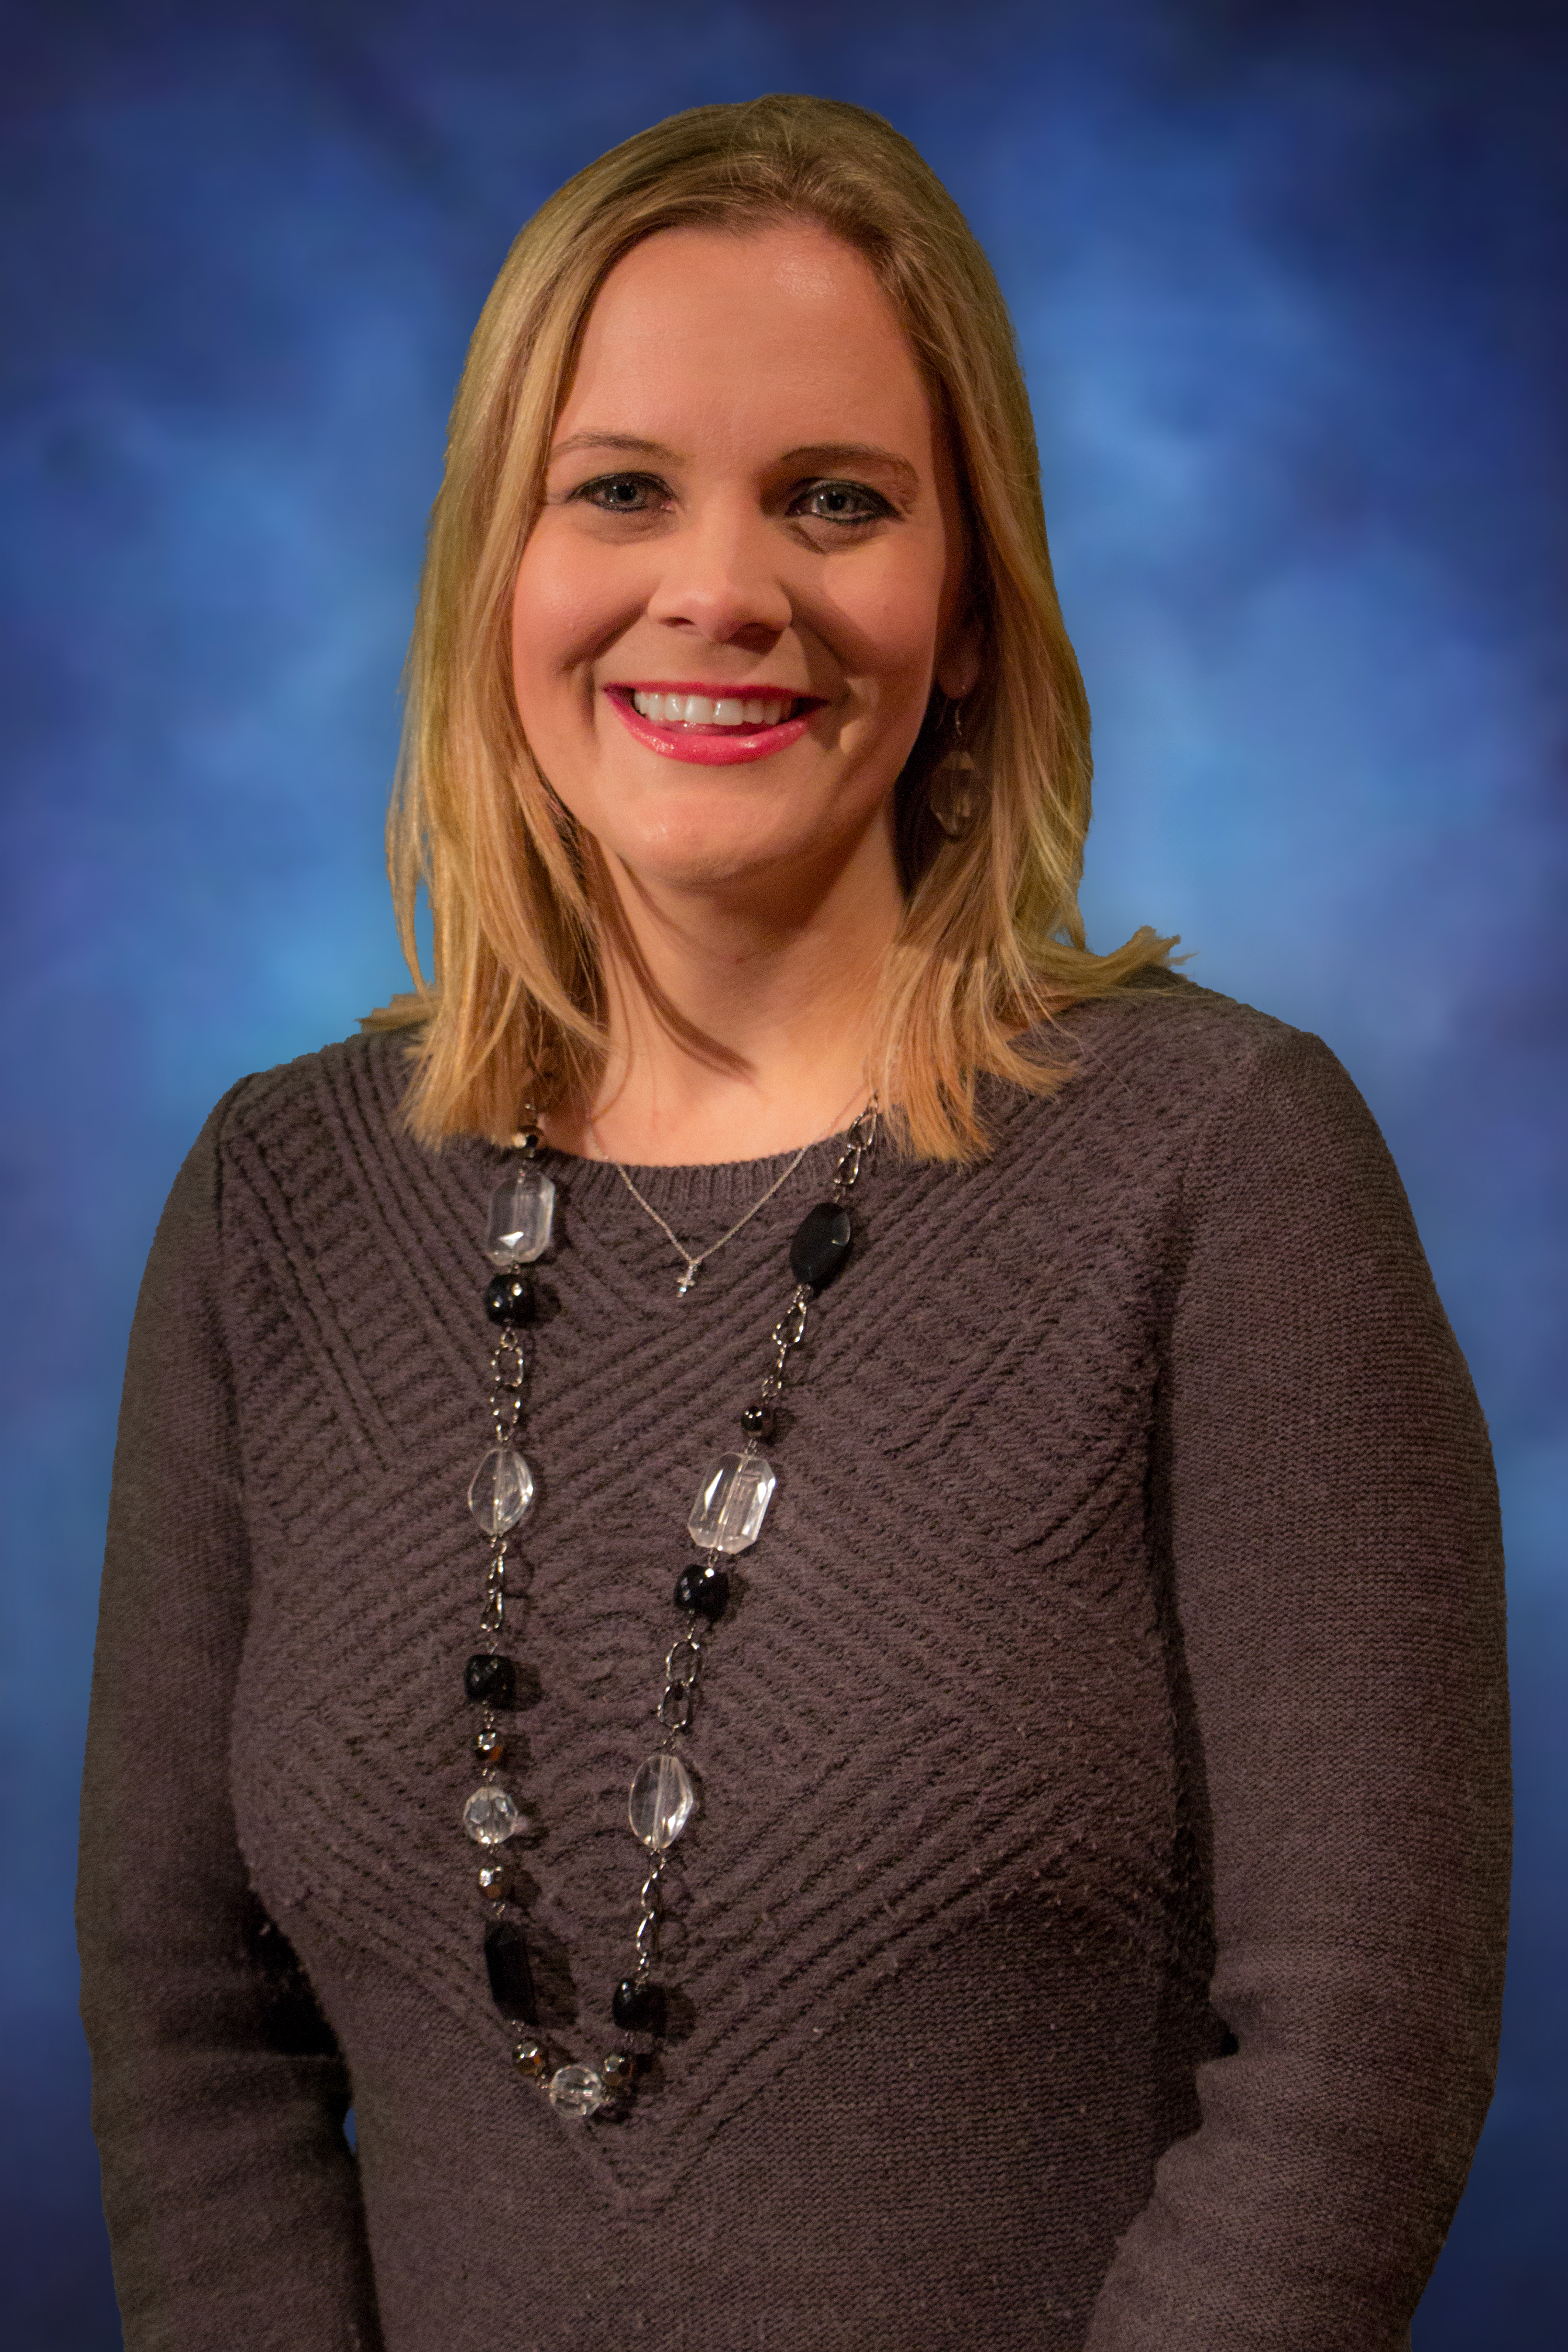 Brittney Brittain, Walnut Springs Elementary Campus Teacher of the Year 2017